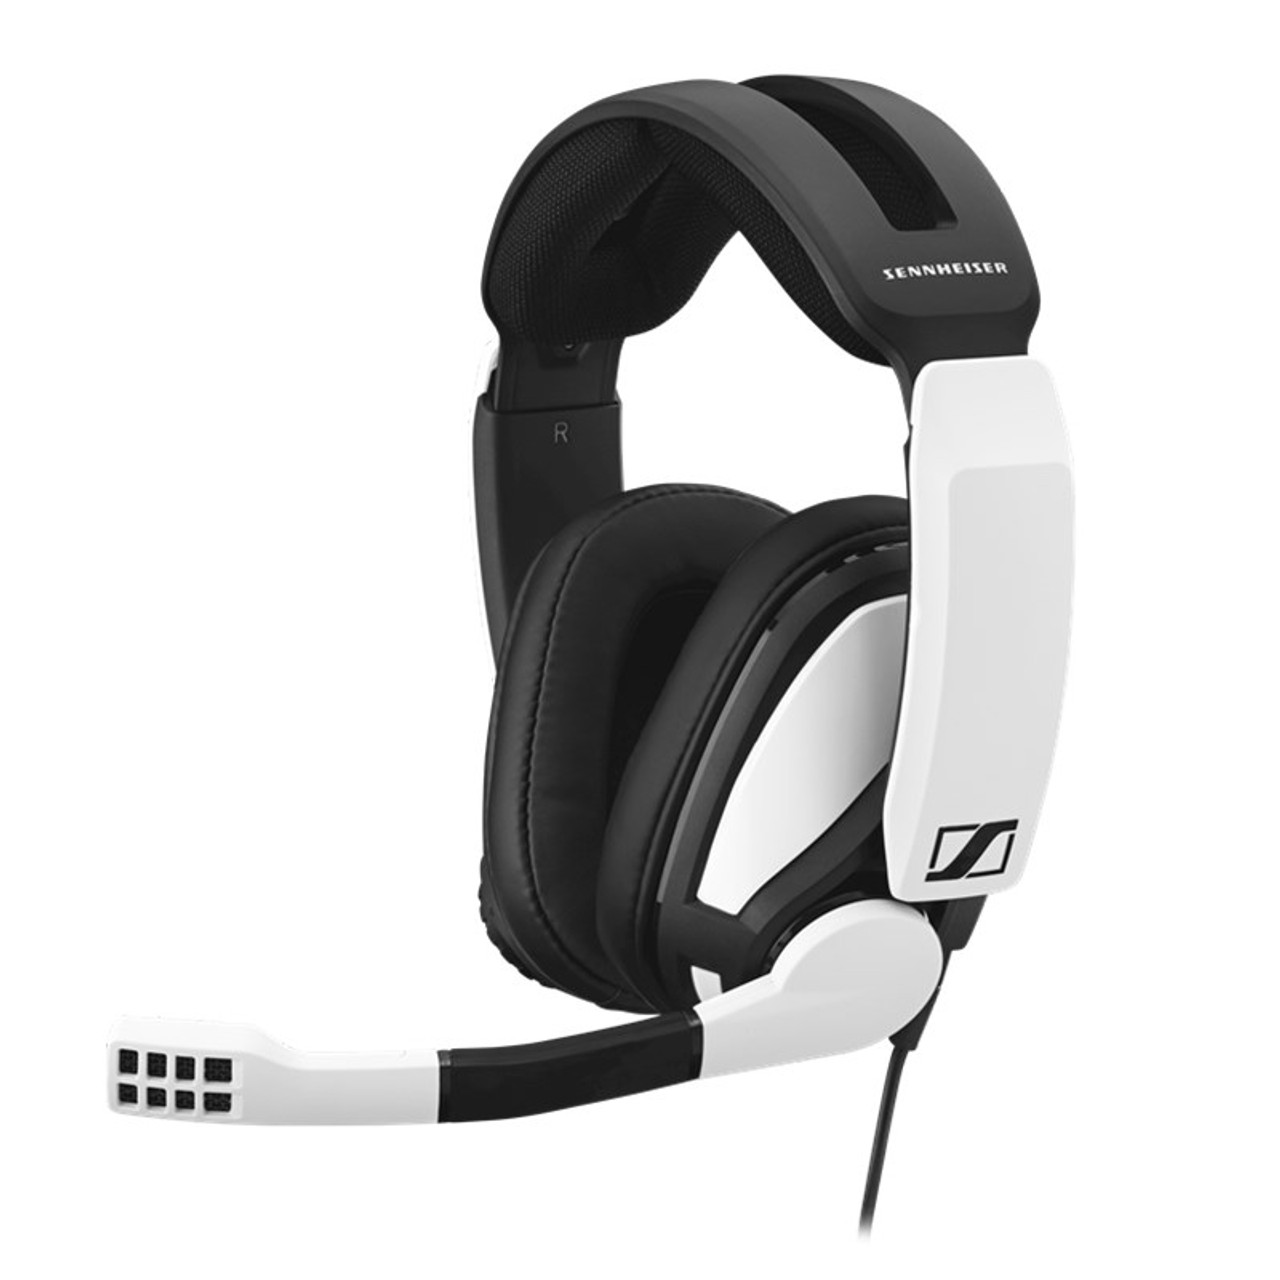 Image for EPOS Sennheiser GSP 301 Closed Back Gaming Headset CX Computer Superstore